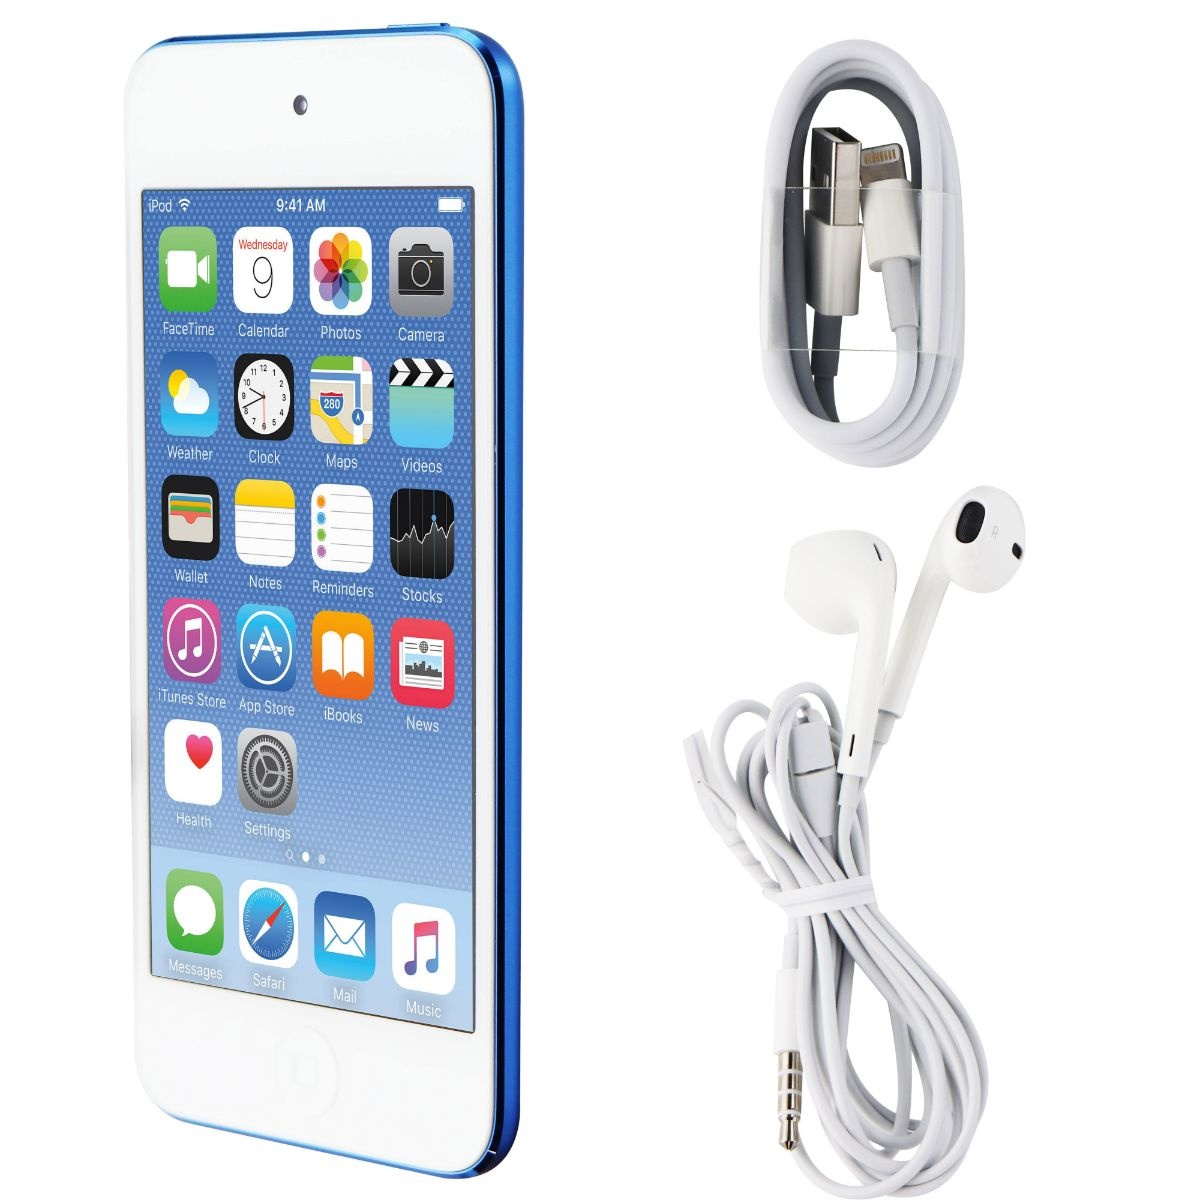 Apple iPod Touch (6th Gen) Wi-Fi Only (A1574) - MKHV2LL/A - 64GB / Blue